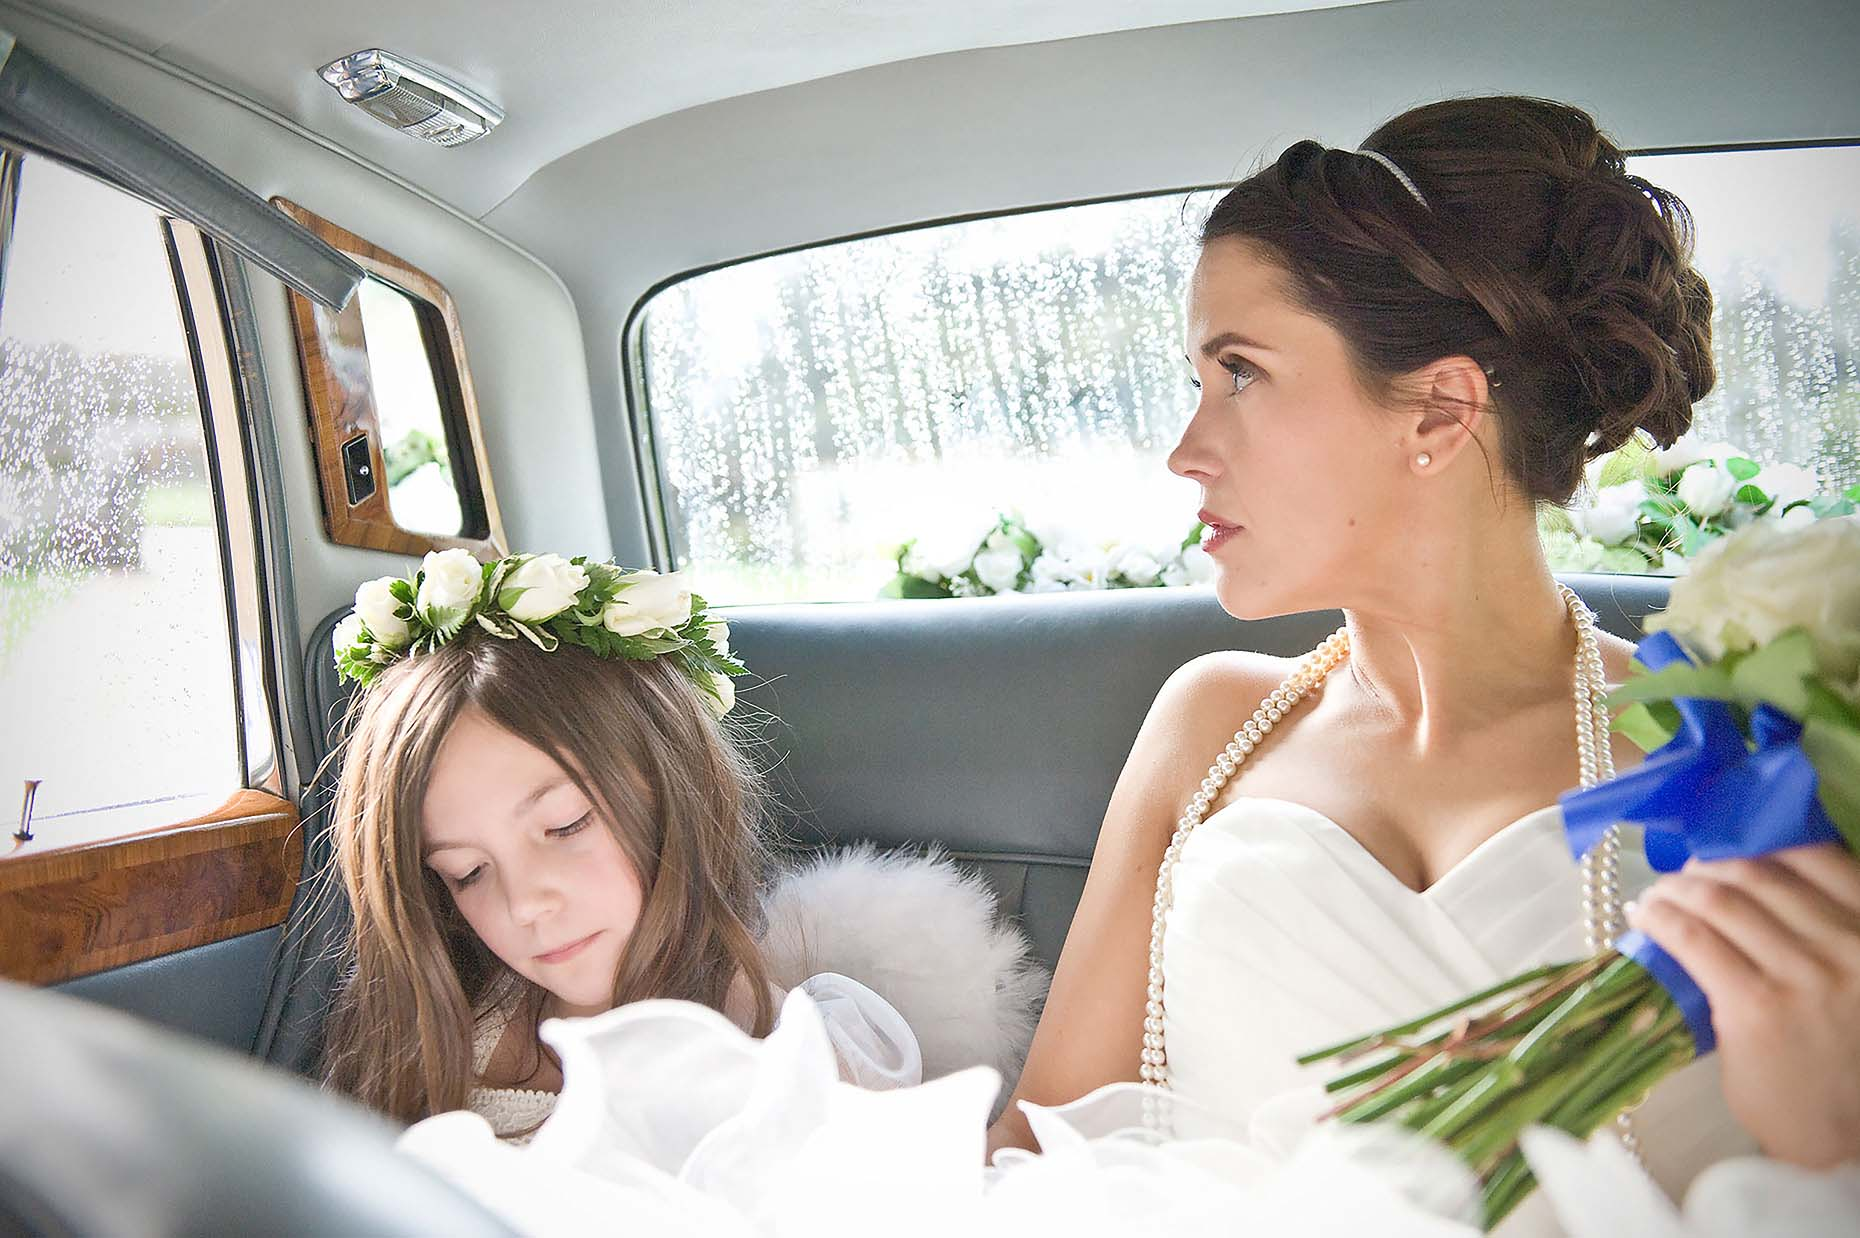 sarah-in-car-pensive-bride-before-wedding-ceremony-athelhampton-33